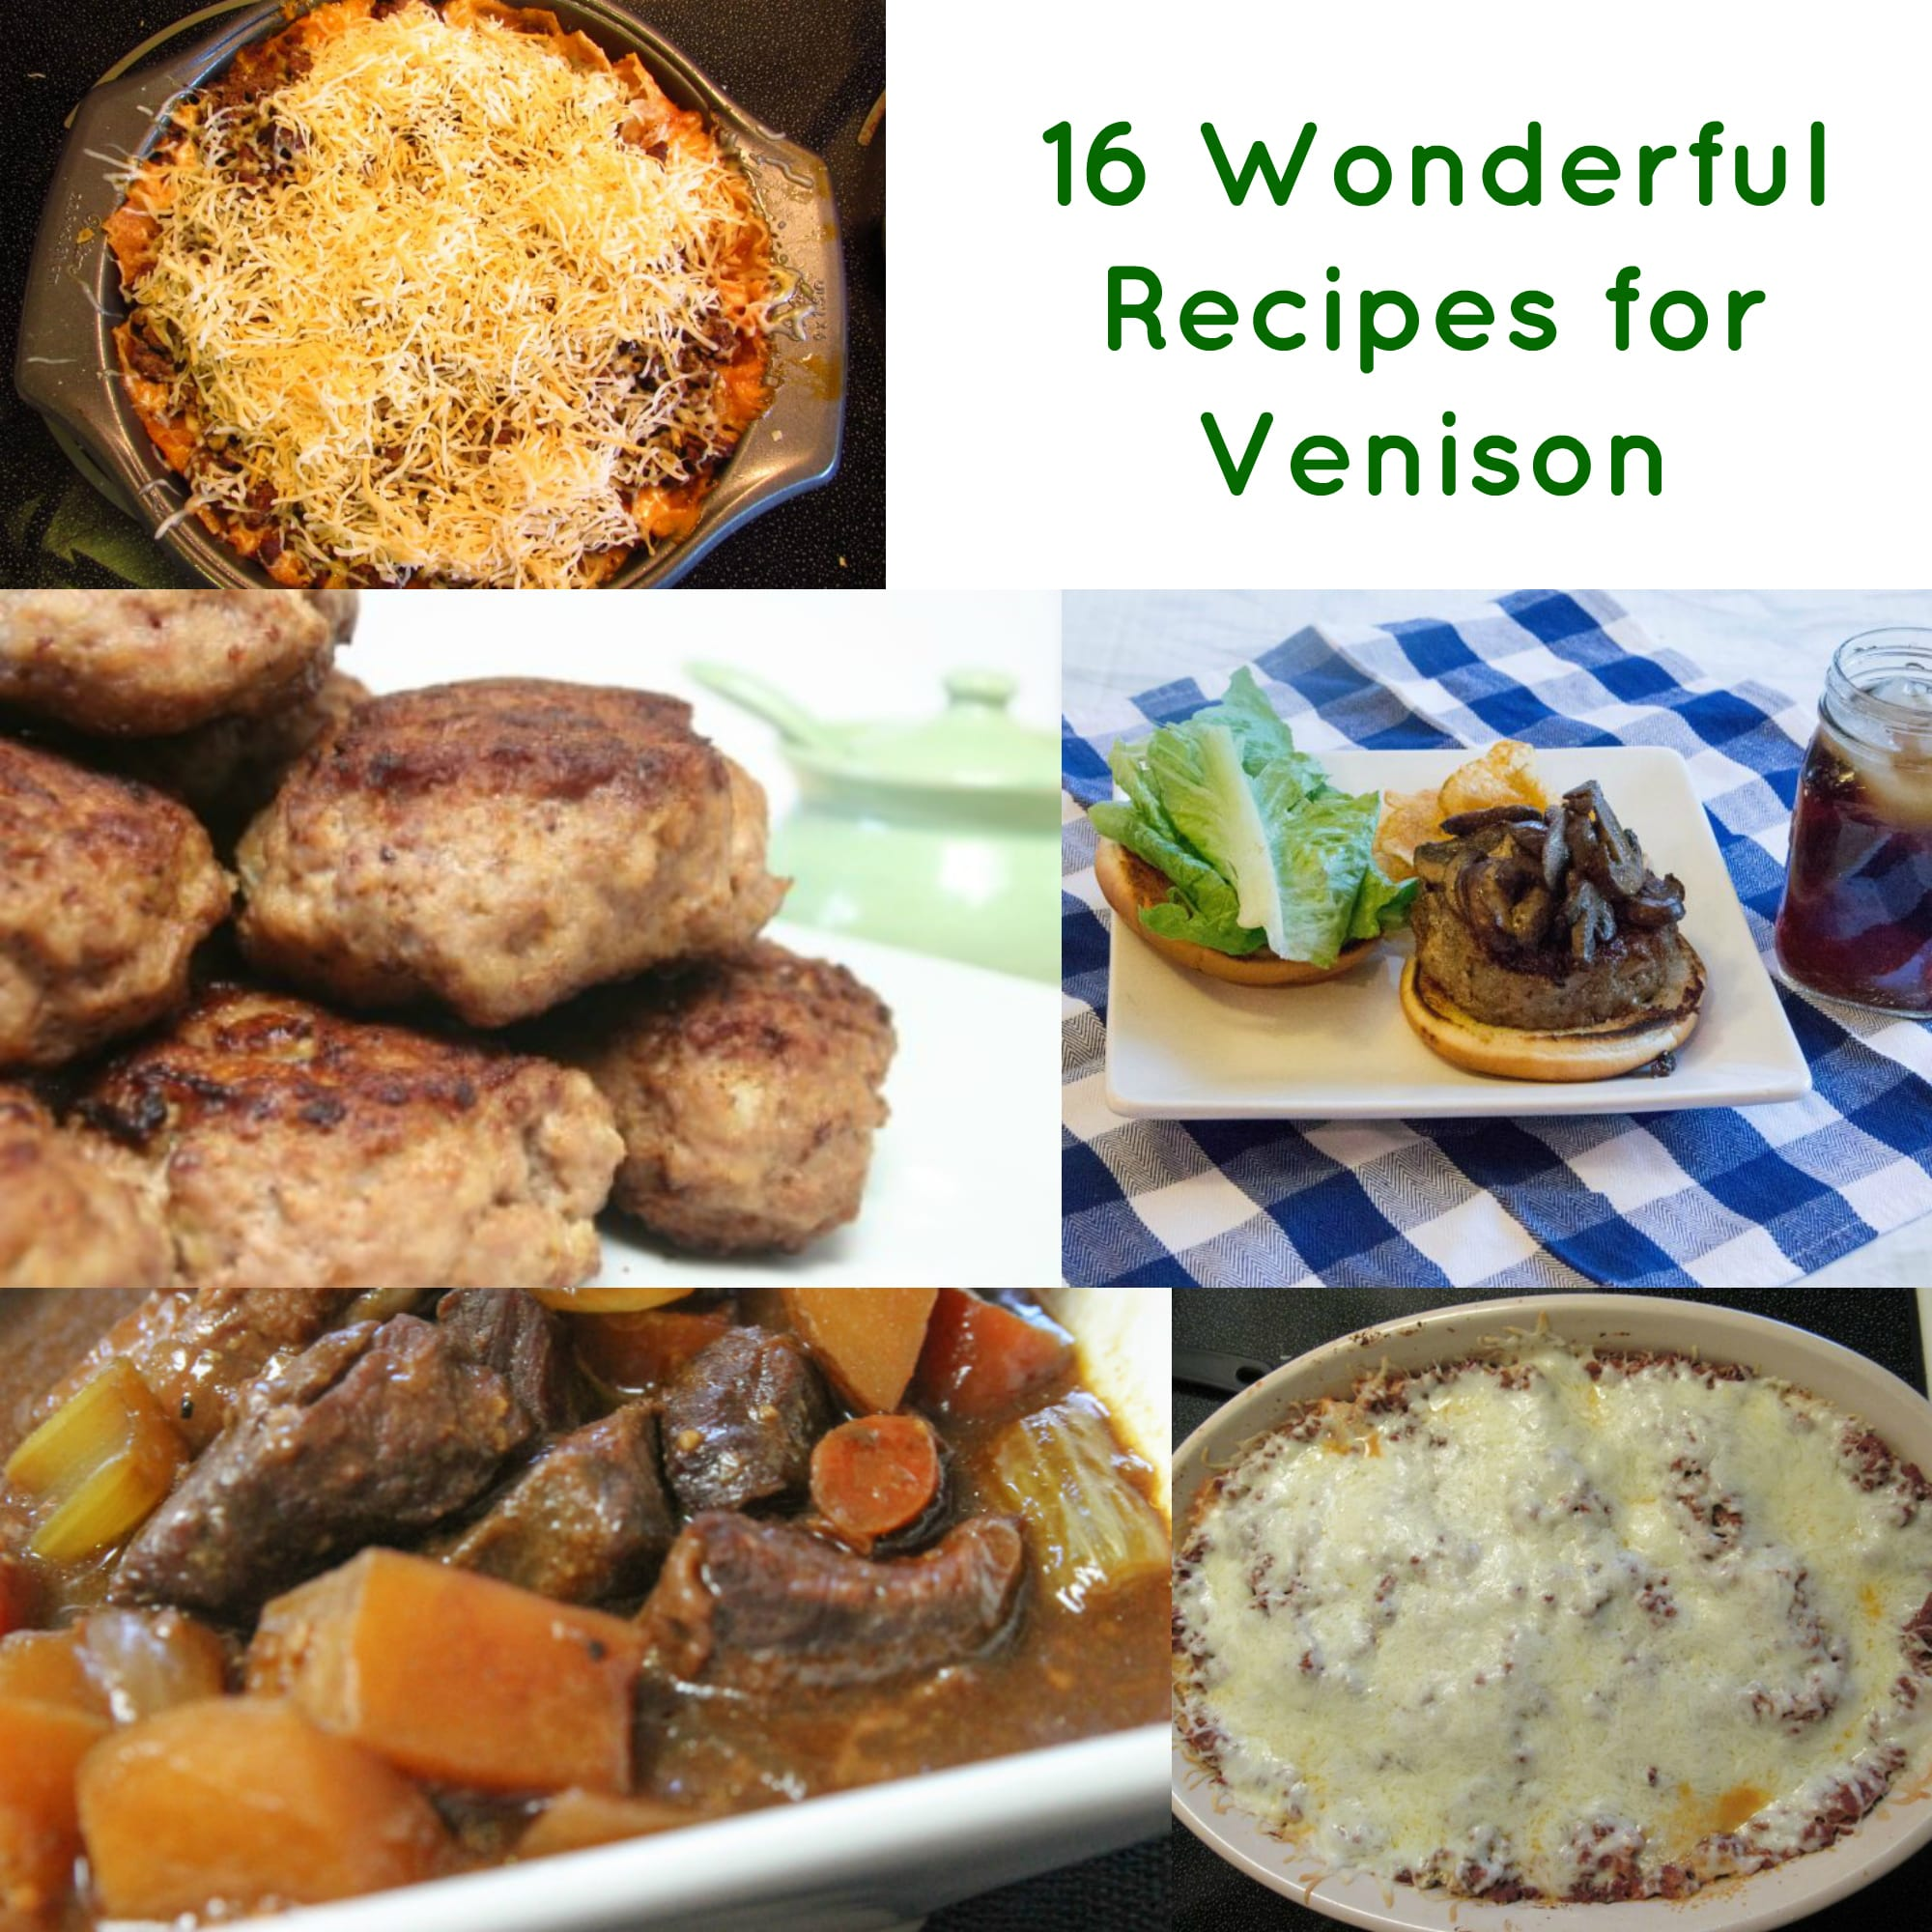 16 Wonderful Venison Recipes to Fill Your Tummy